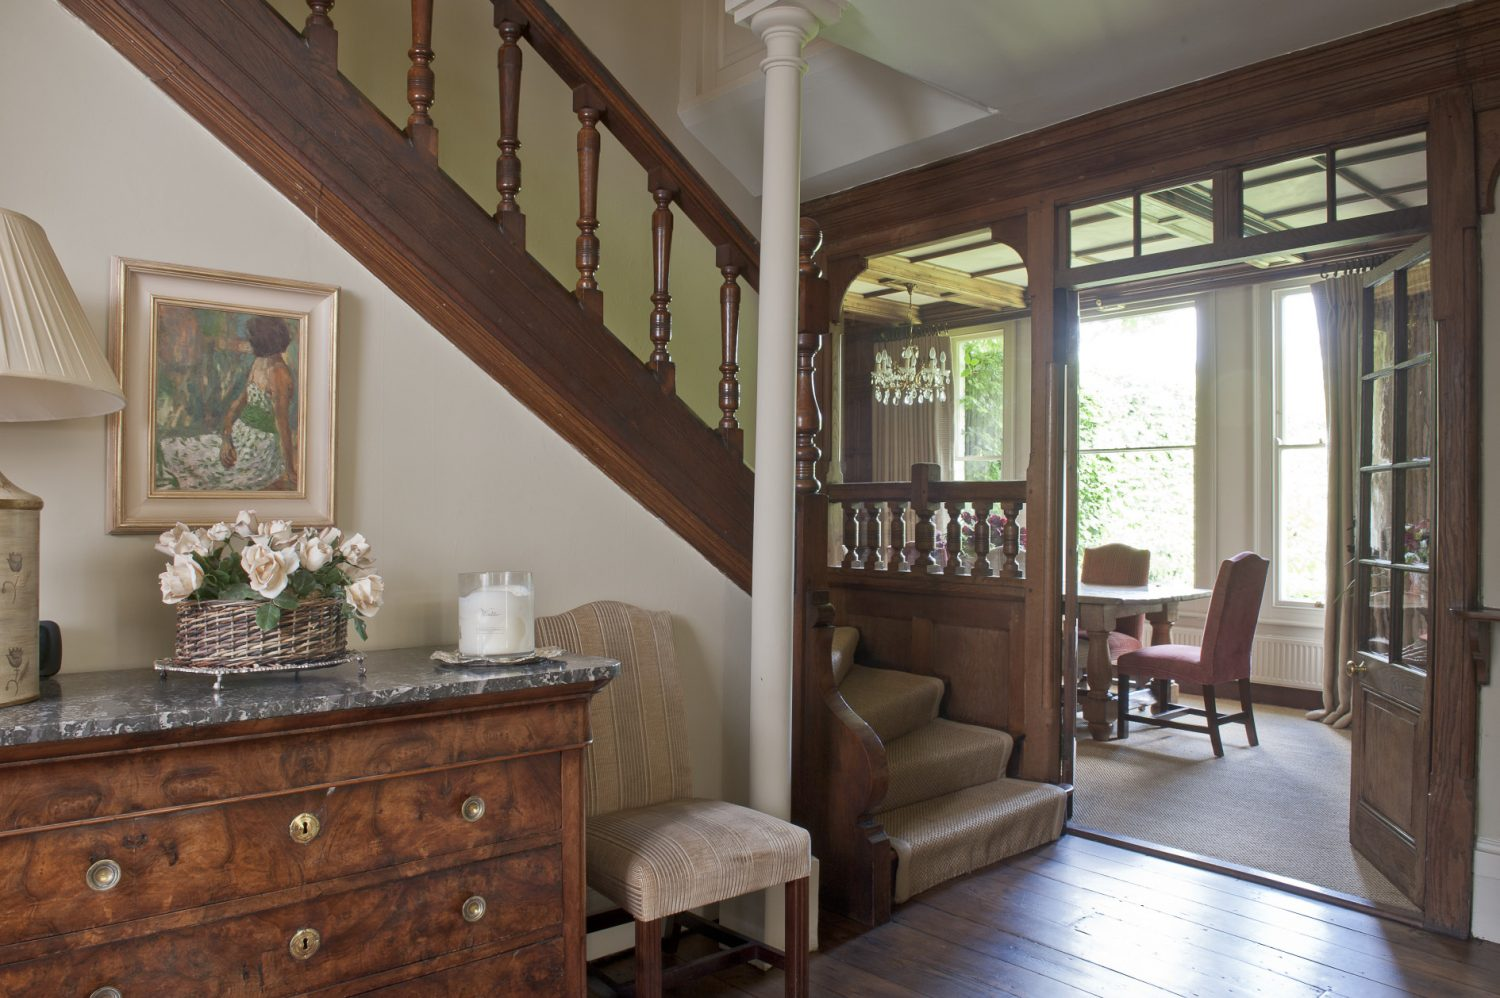 The stately windows allow light to flood into this room illuminating the wood-panelled walls